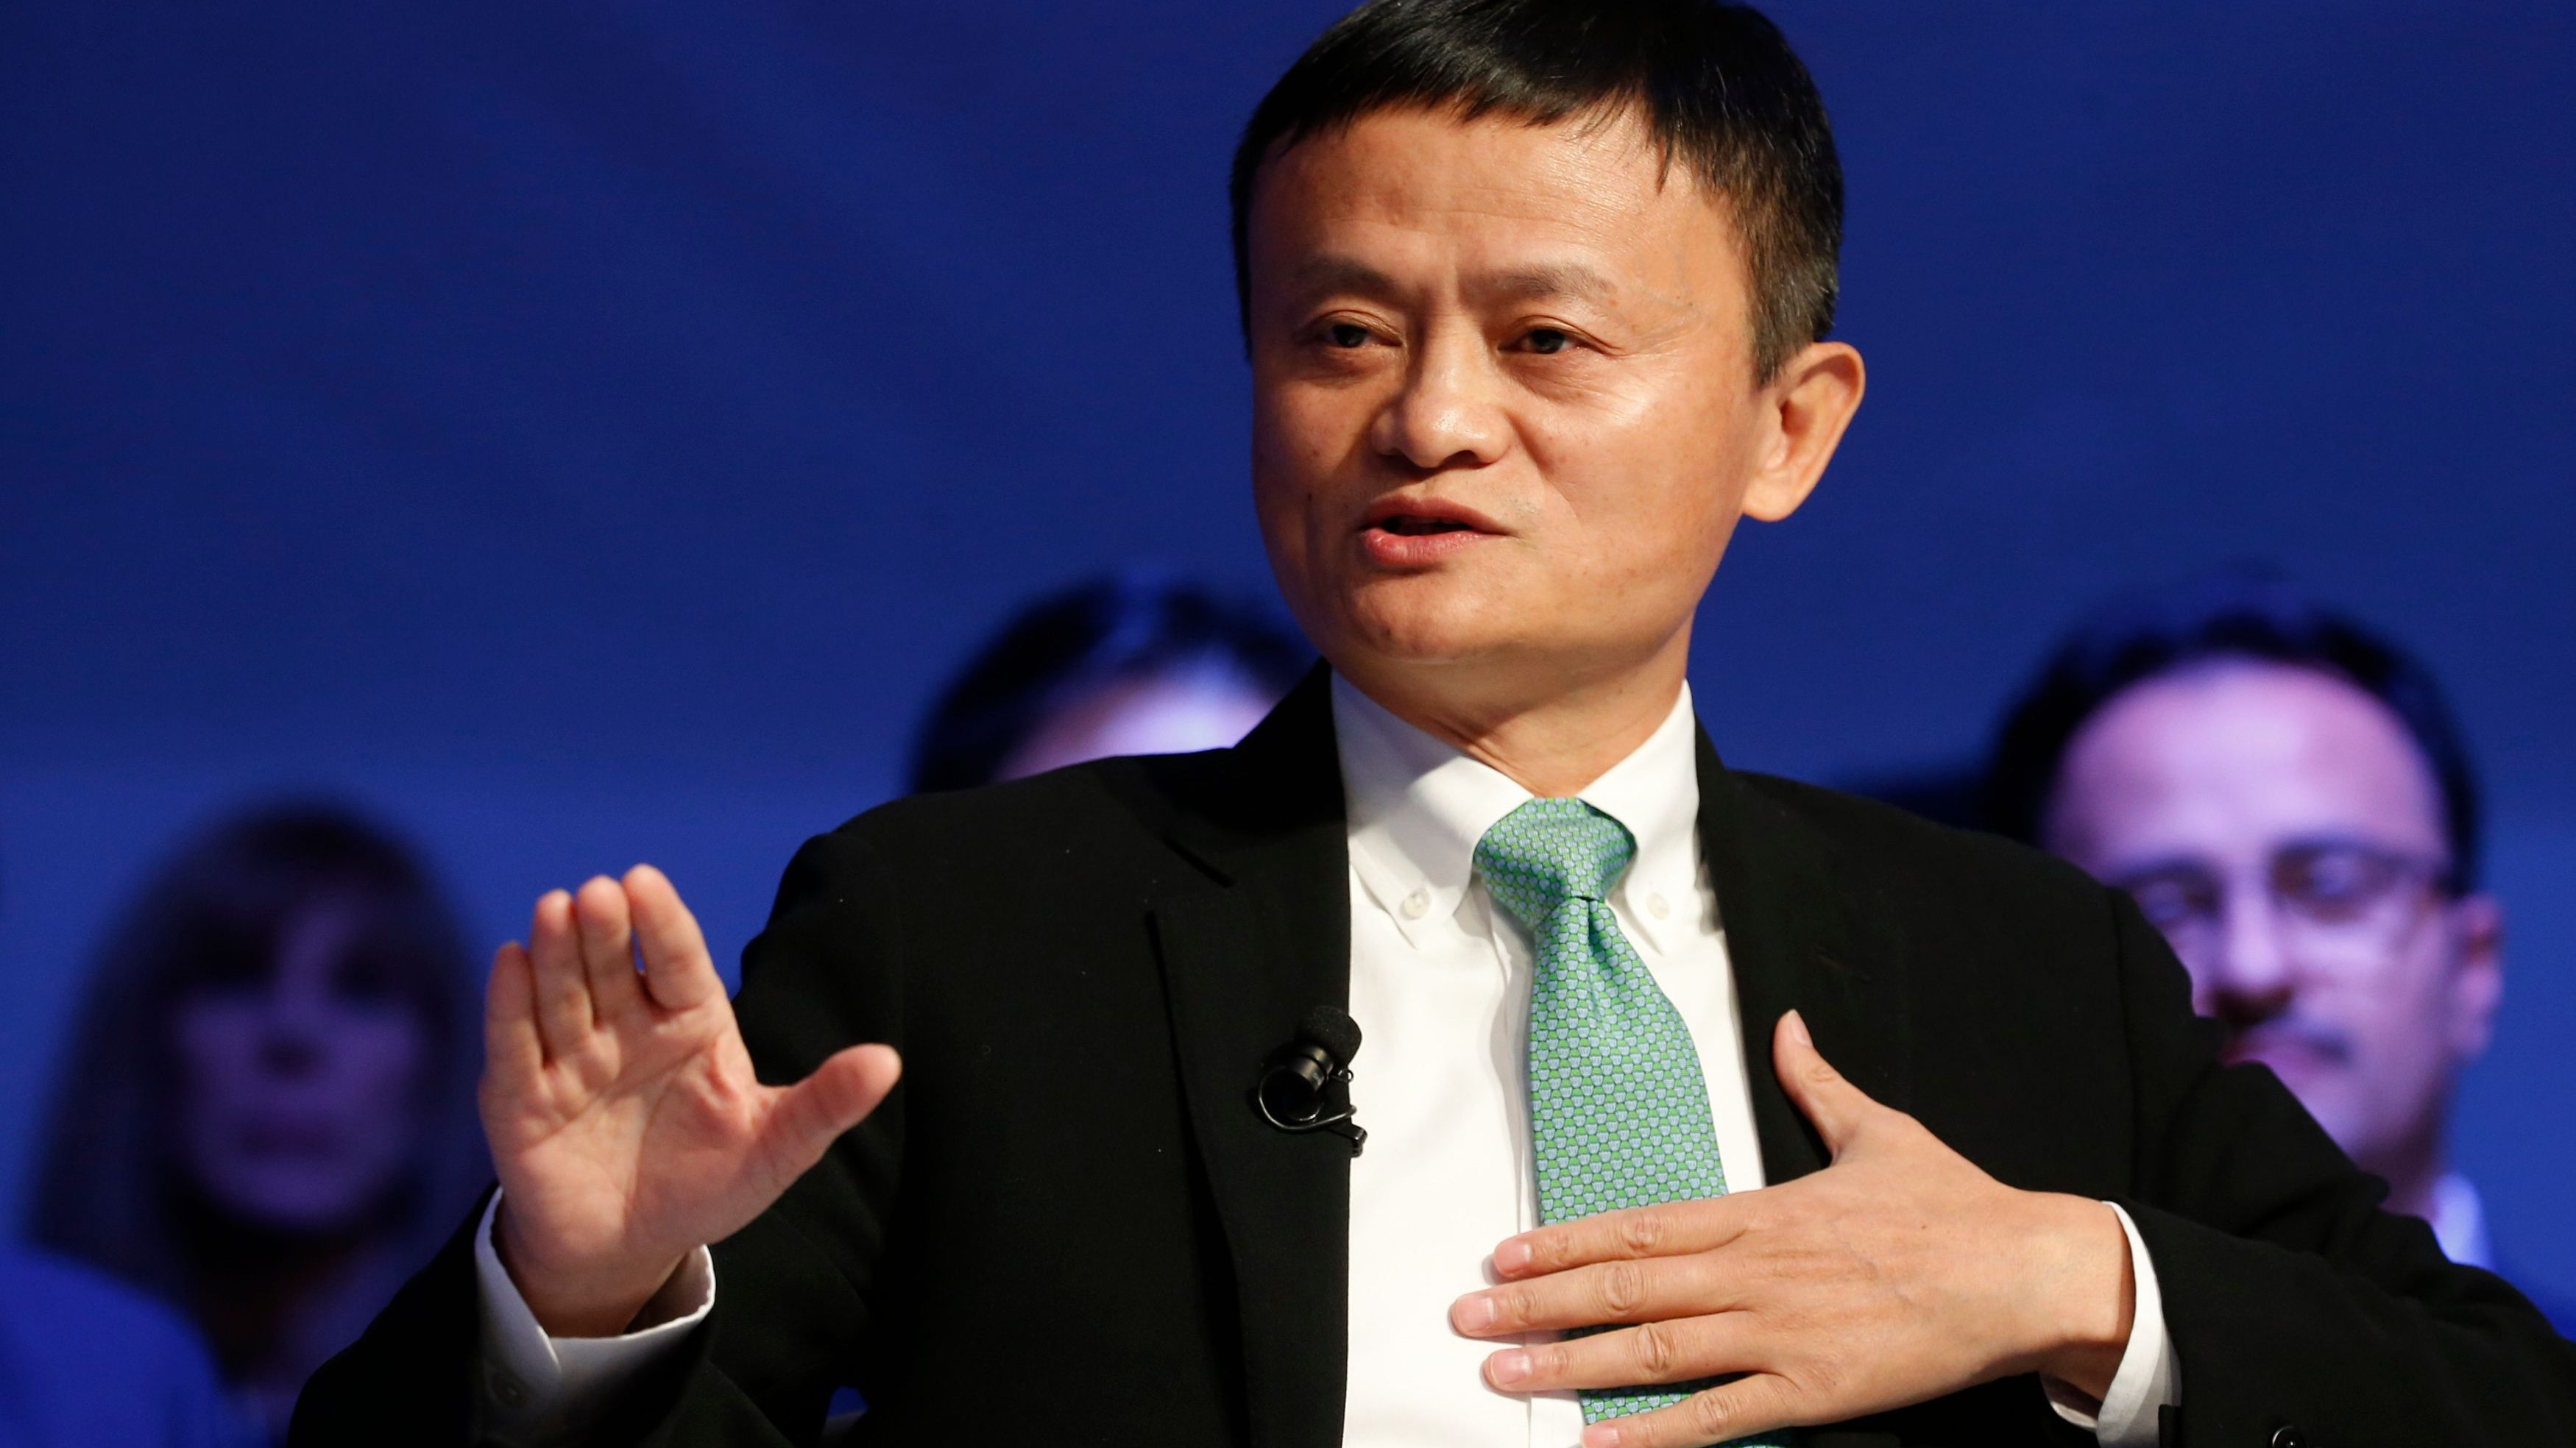 Jack Ma's lesson to Indian CEOs: Pick the best successor, not just your kid